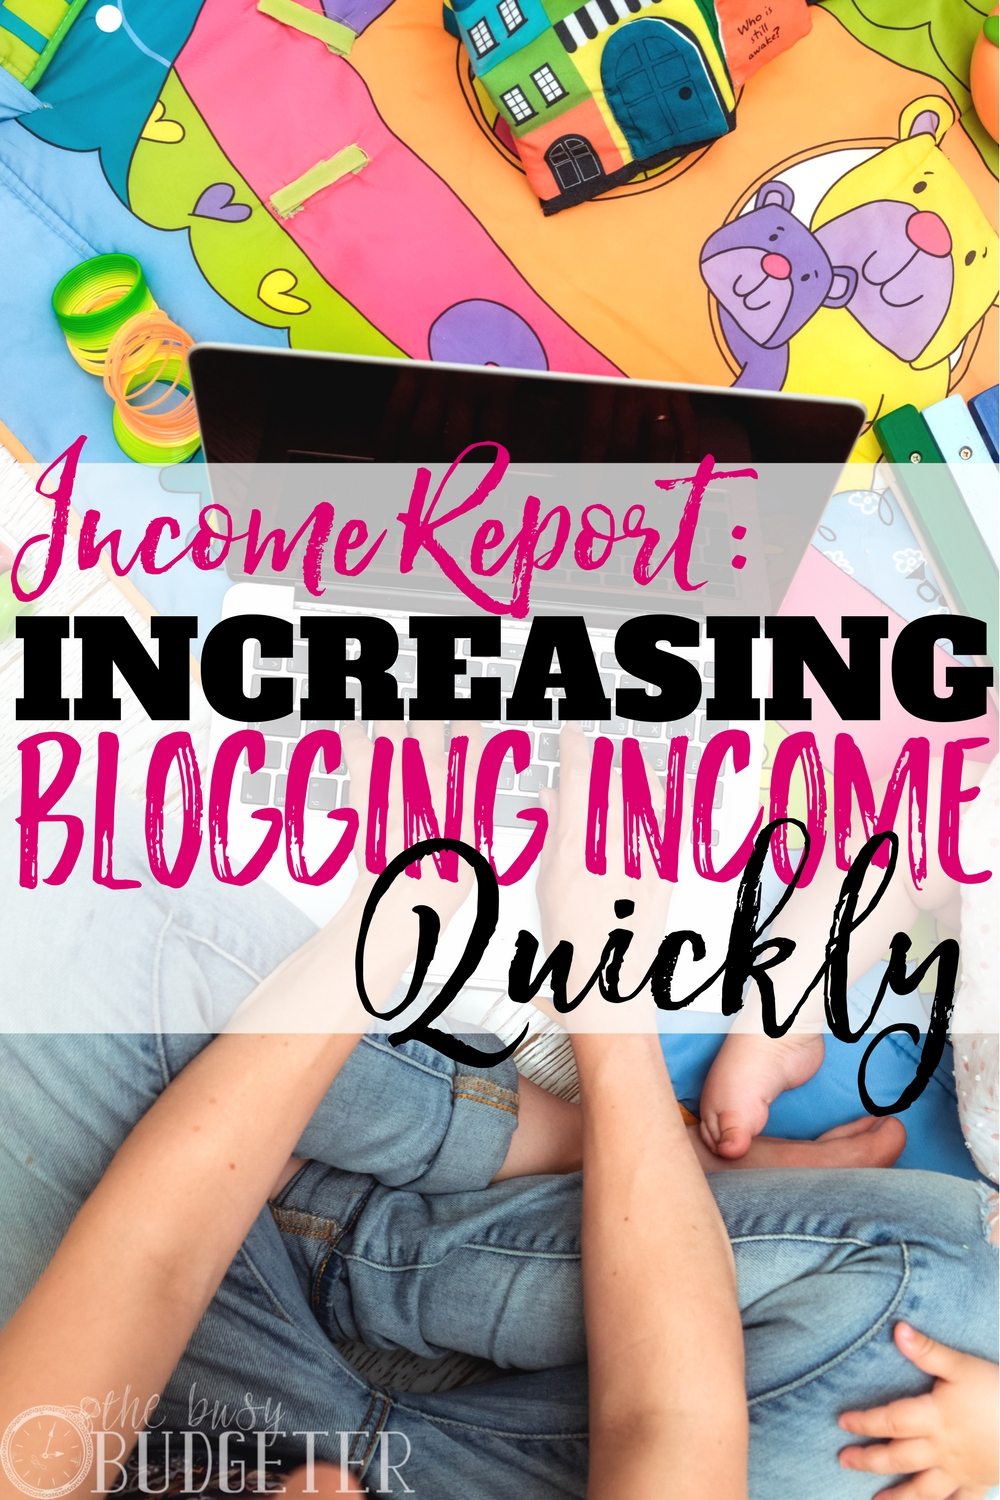 I didn't know that increasing blogging income quickly was even possible. This income report makeover helped me understand what I need to do to earn more money blogging. Thank you!!